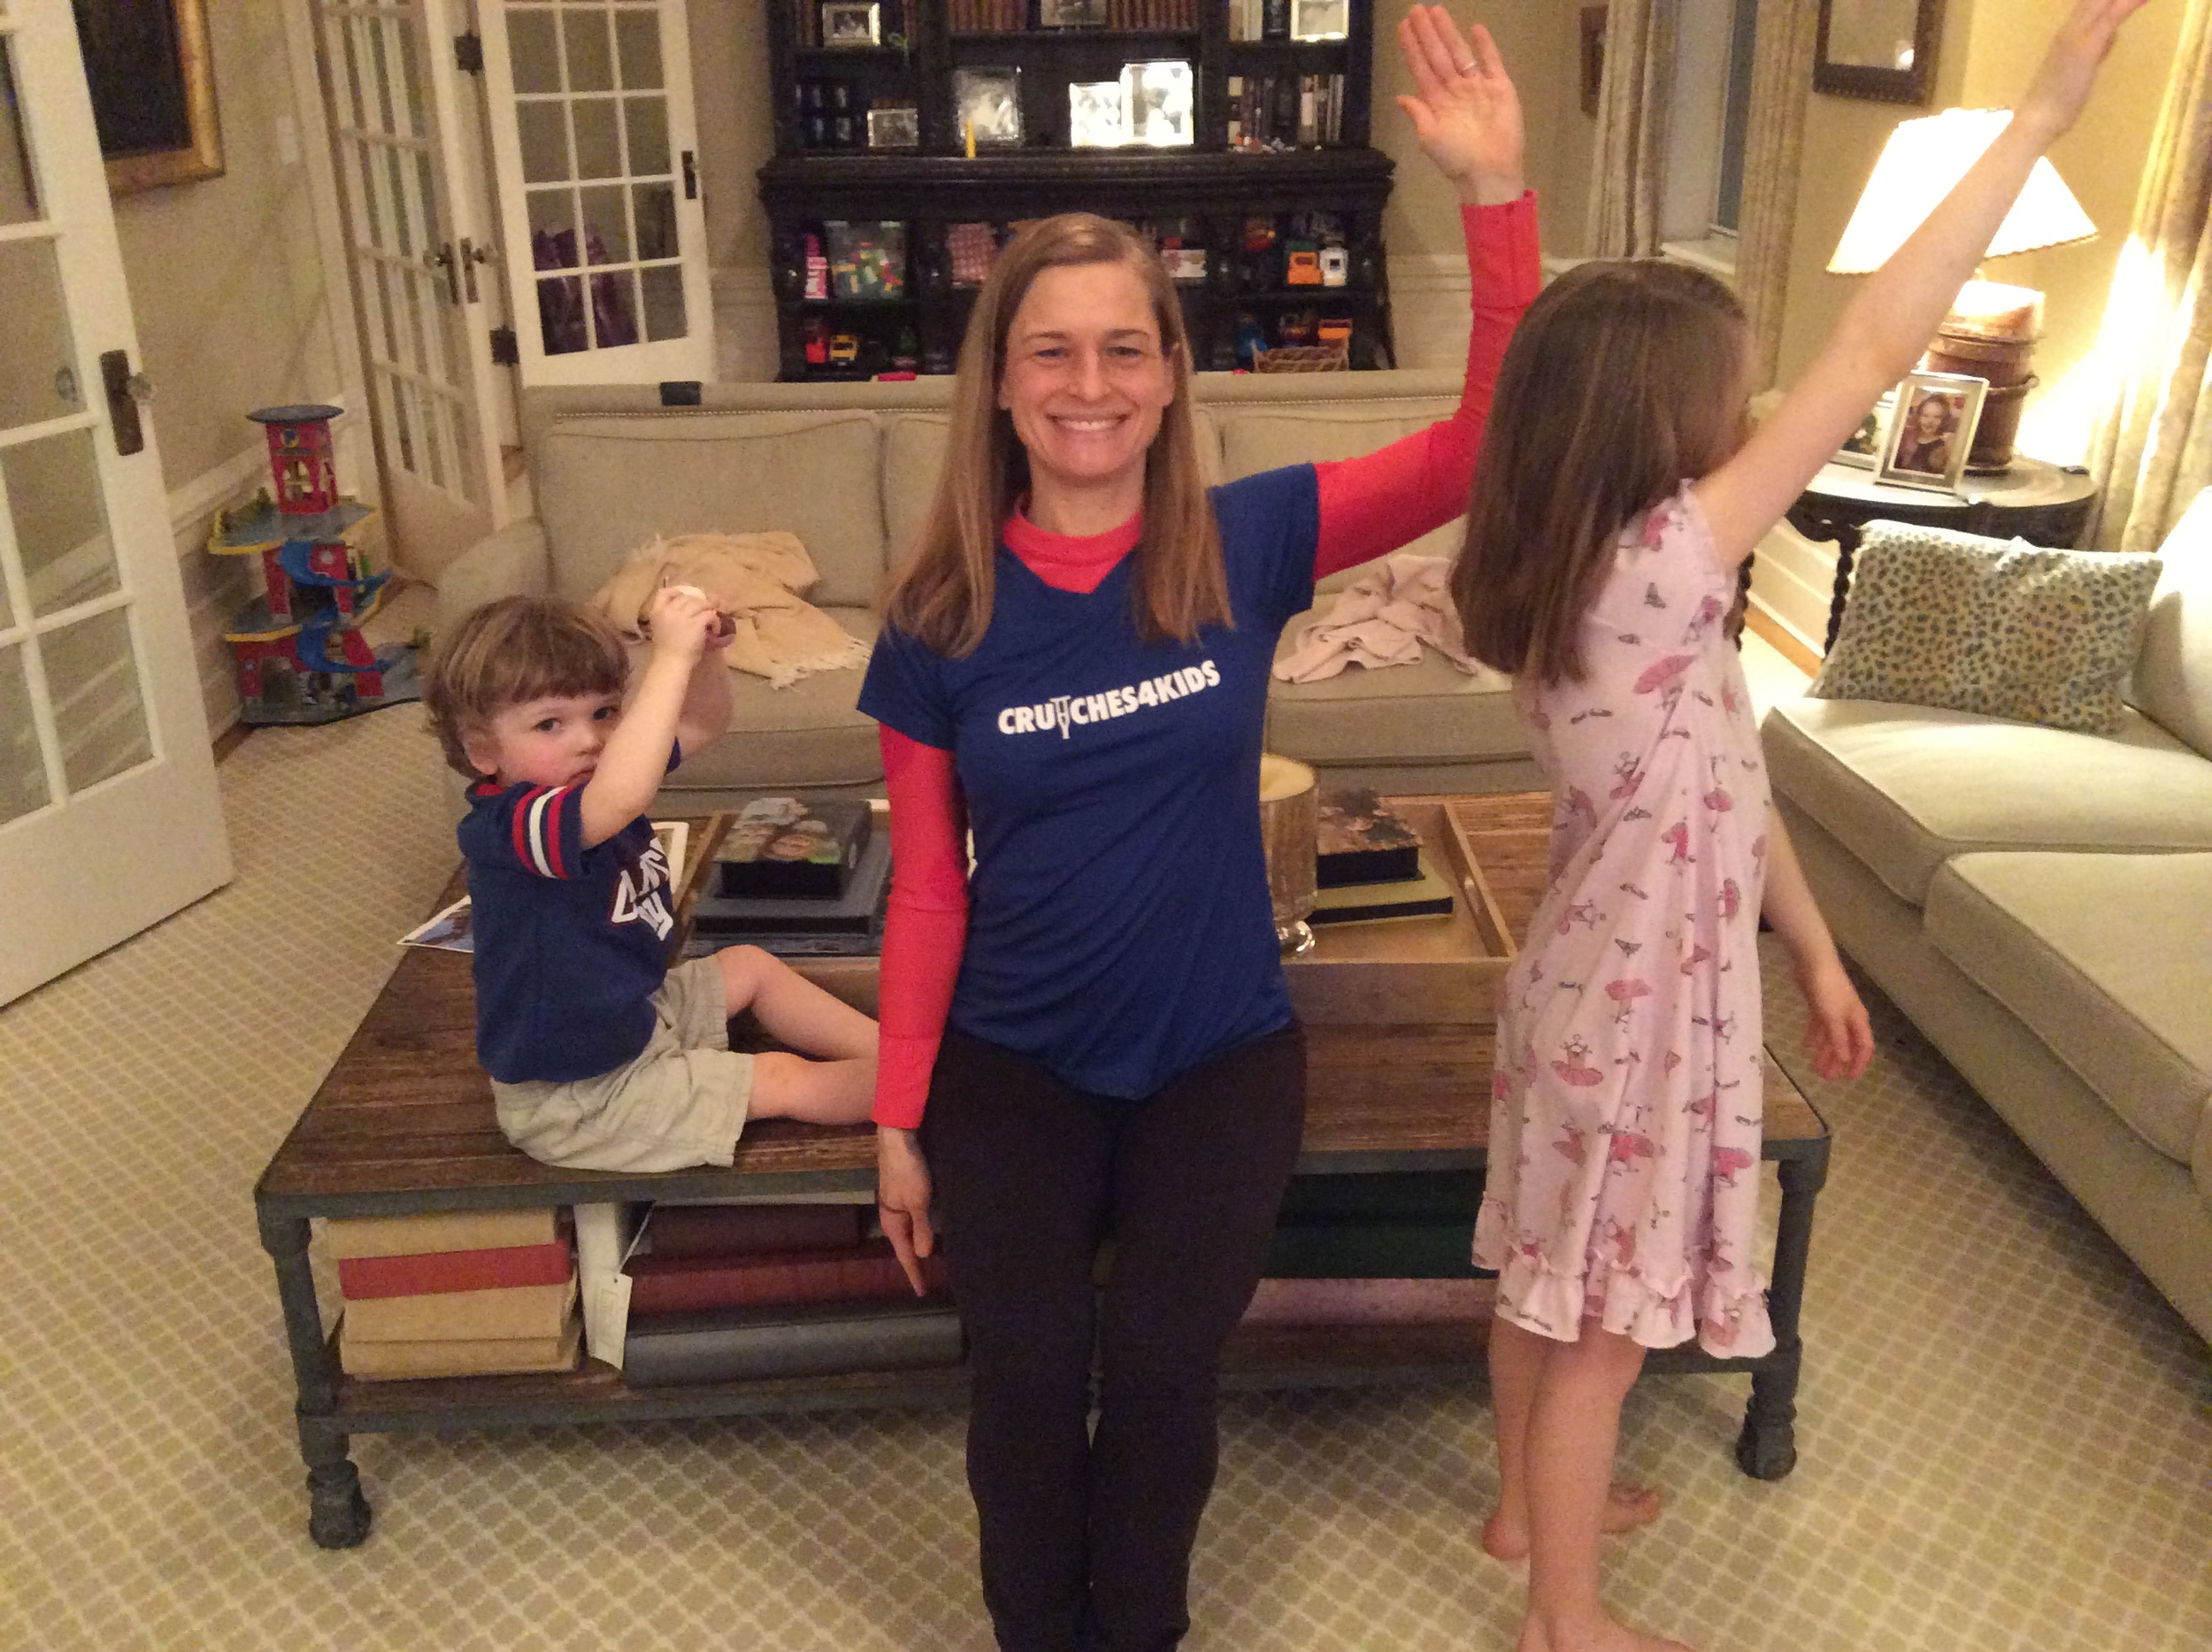 """Chelsea Palmer in NYC - """"I'm running for C4K to make a tangible and dramatic difference in the lives of 100 children who lack mobility. C4K rocks!!!!!!"""""""